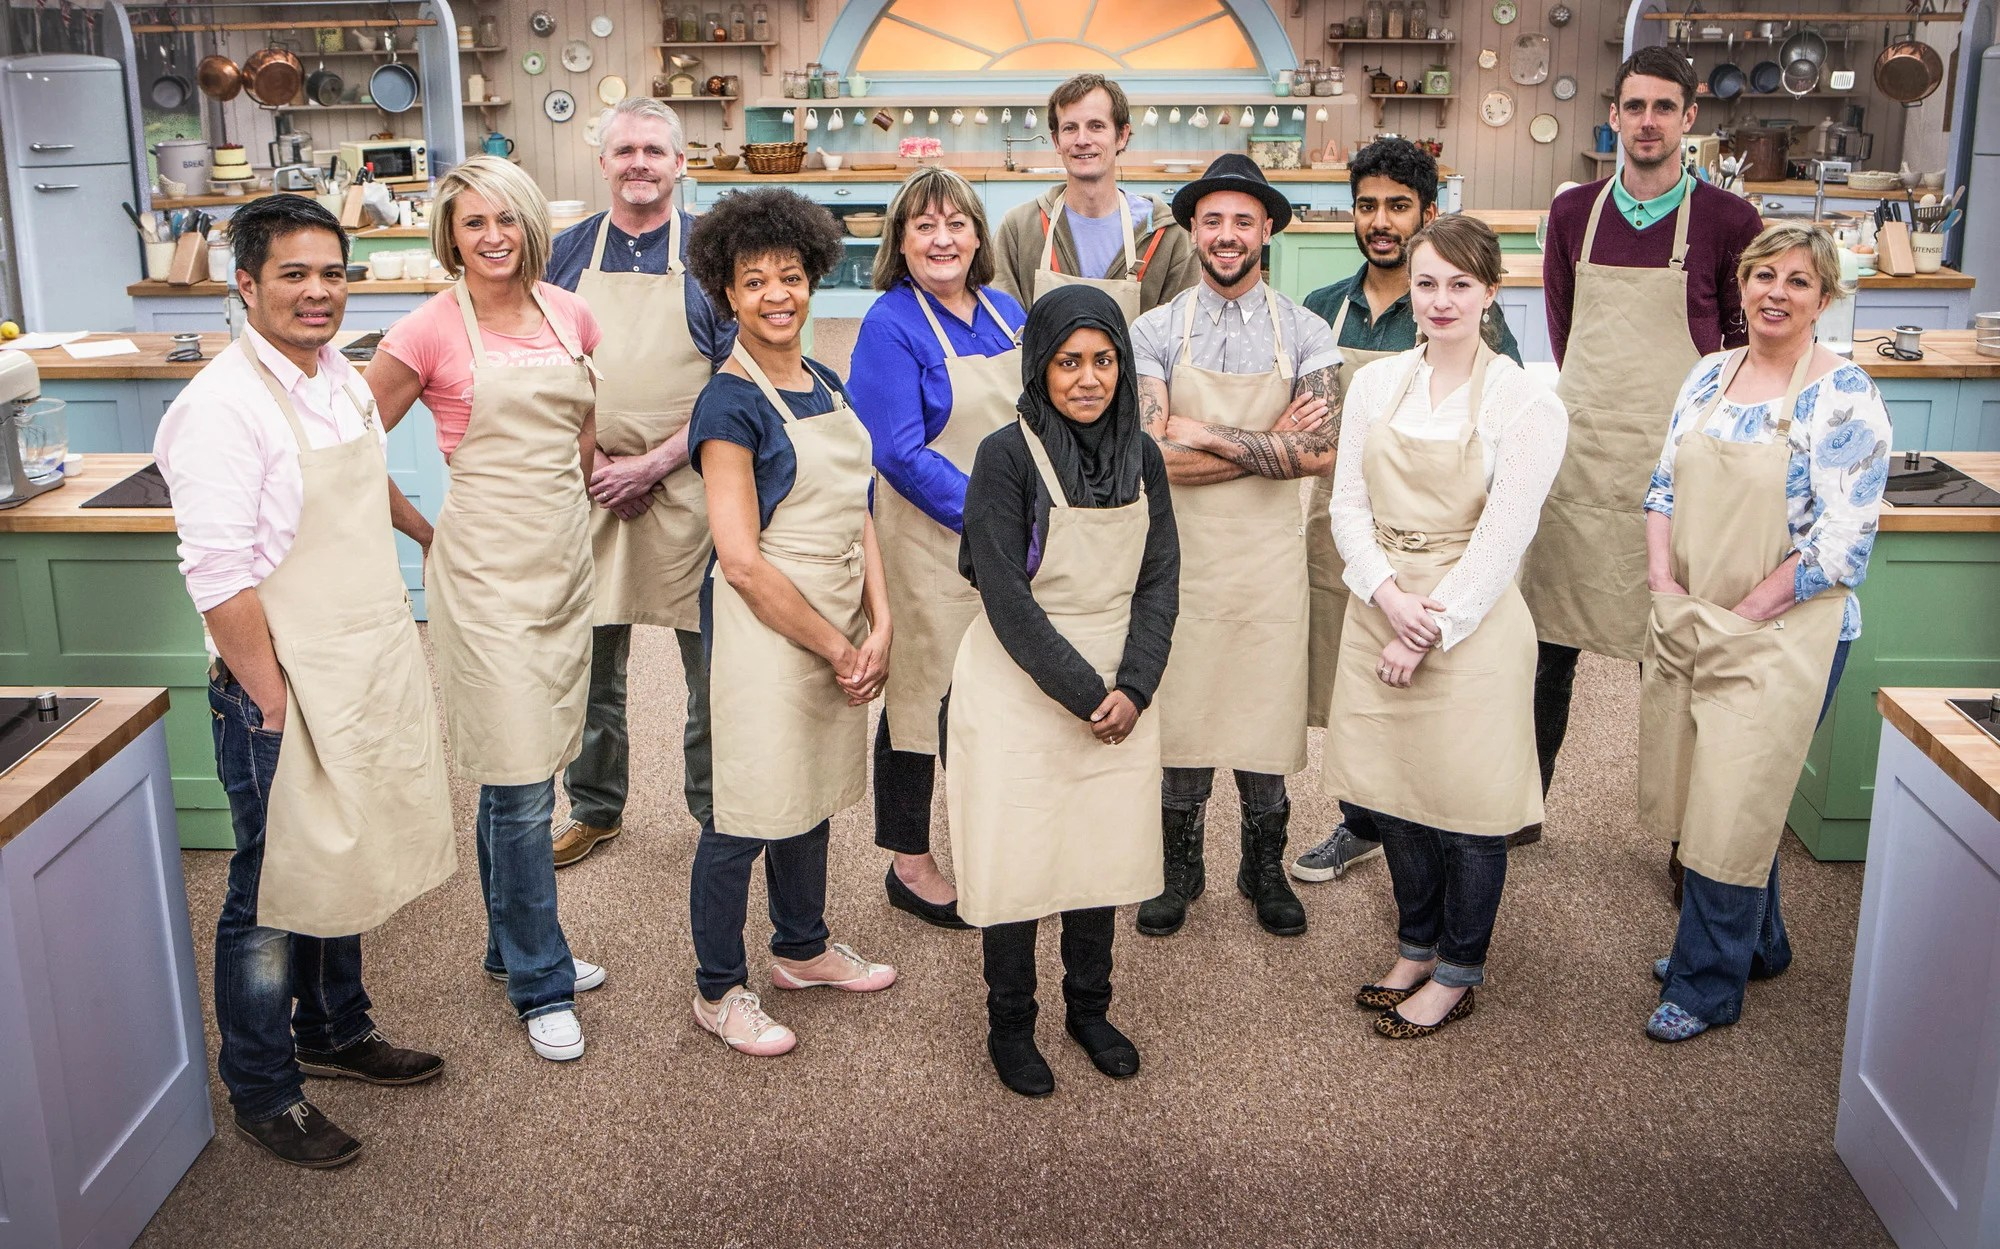 5 Reason Why I Love Watching The Great British Bake Off